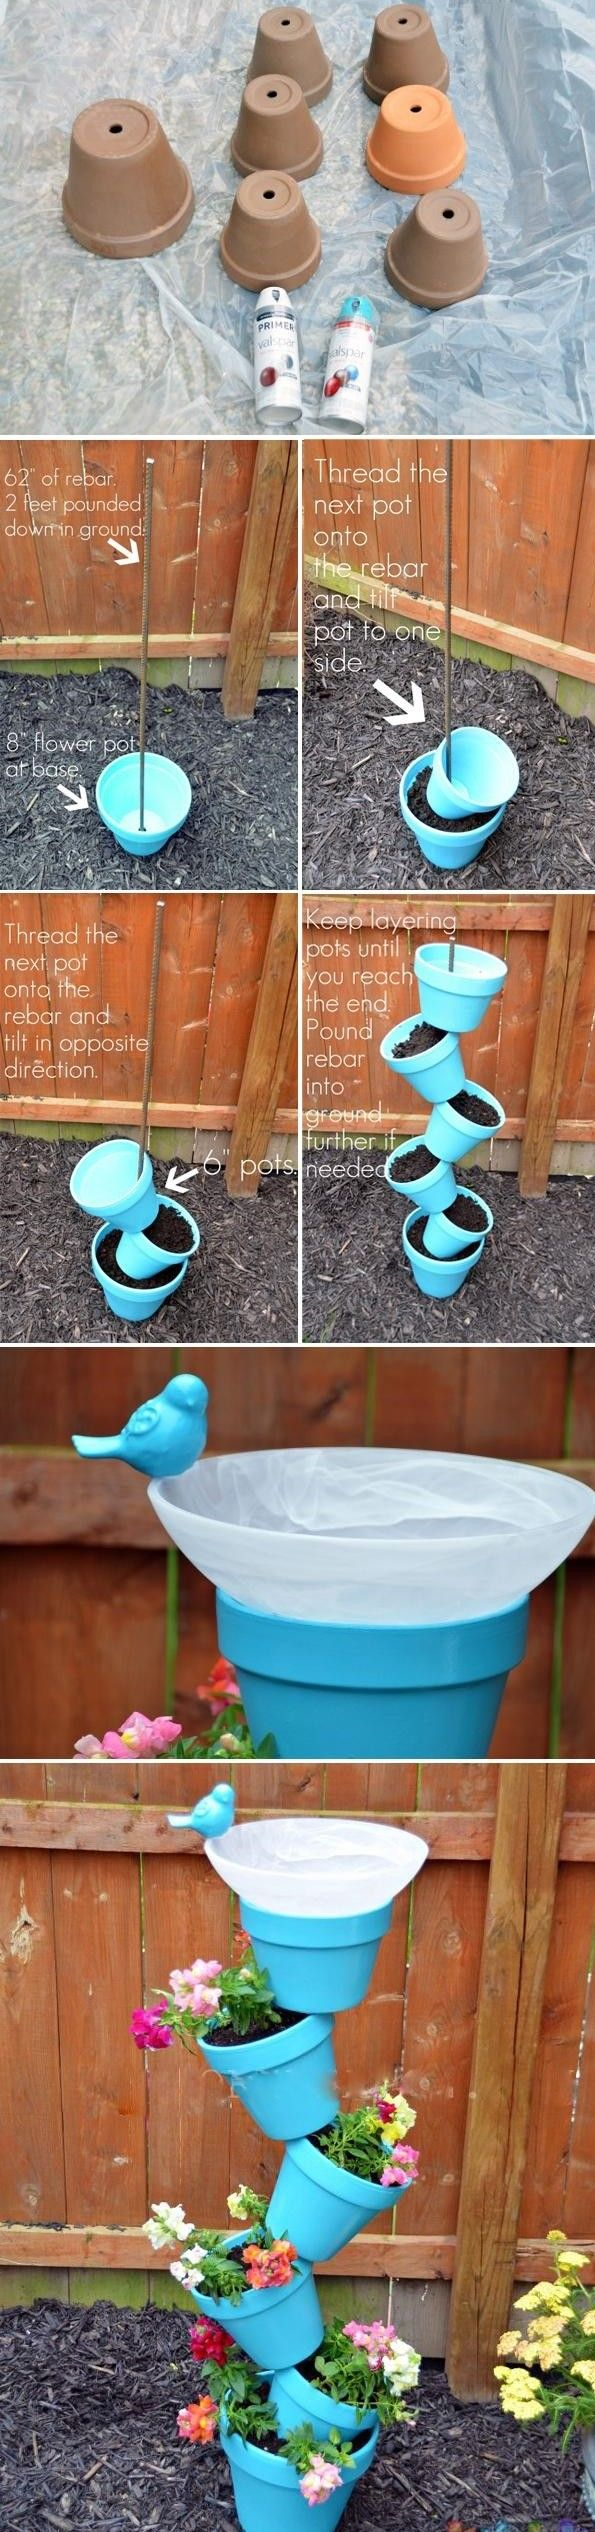 Homemade garden ideas - Best 20 Homemade Water Fountains Ideas On Pinterest Homemade Pools Bird Fountain And Yard Water Fountains